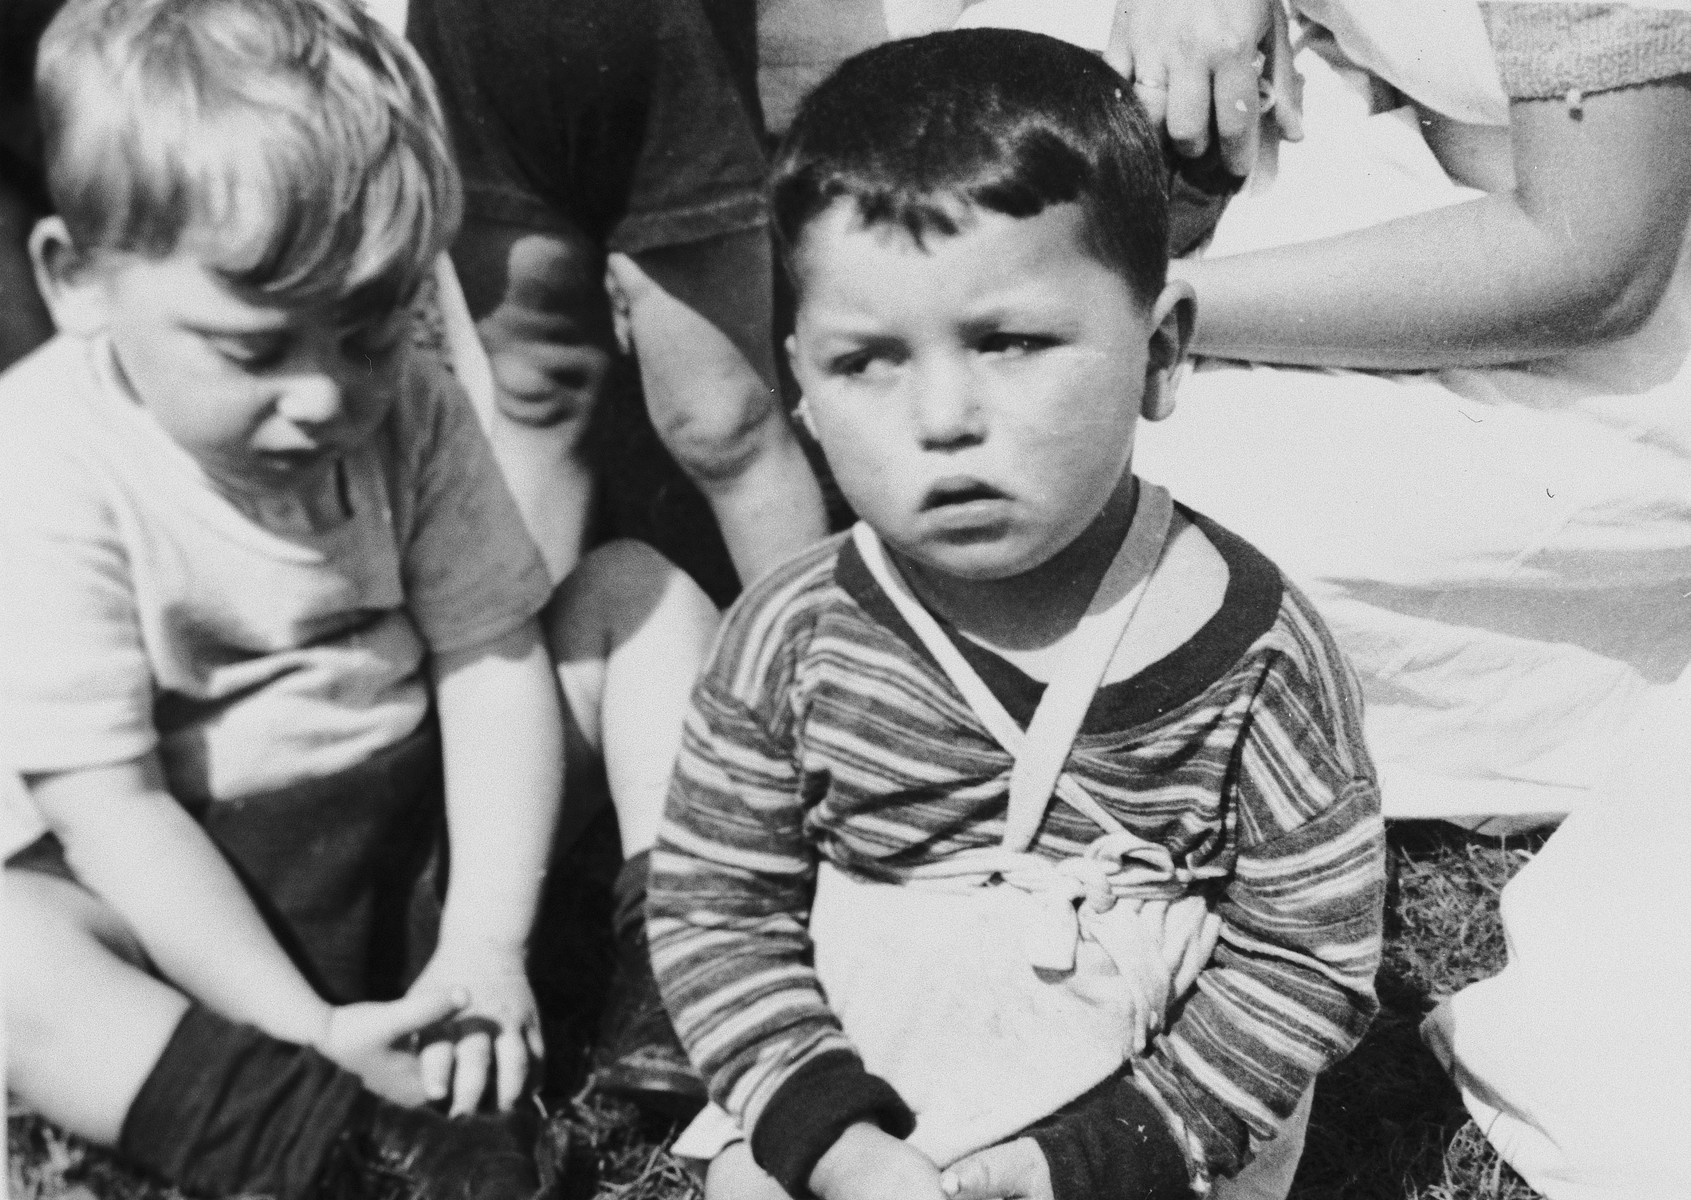 Pre-school age DP children sit outside in a field in a Jewish displaced persons camp in Austria (probably Bindermichl).